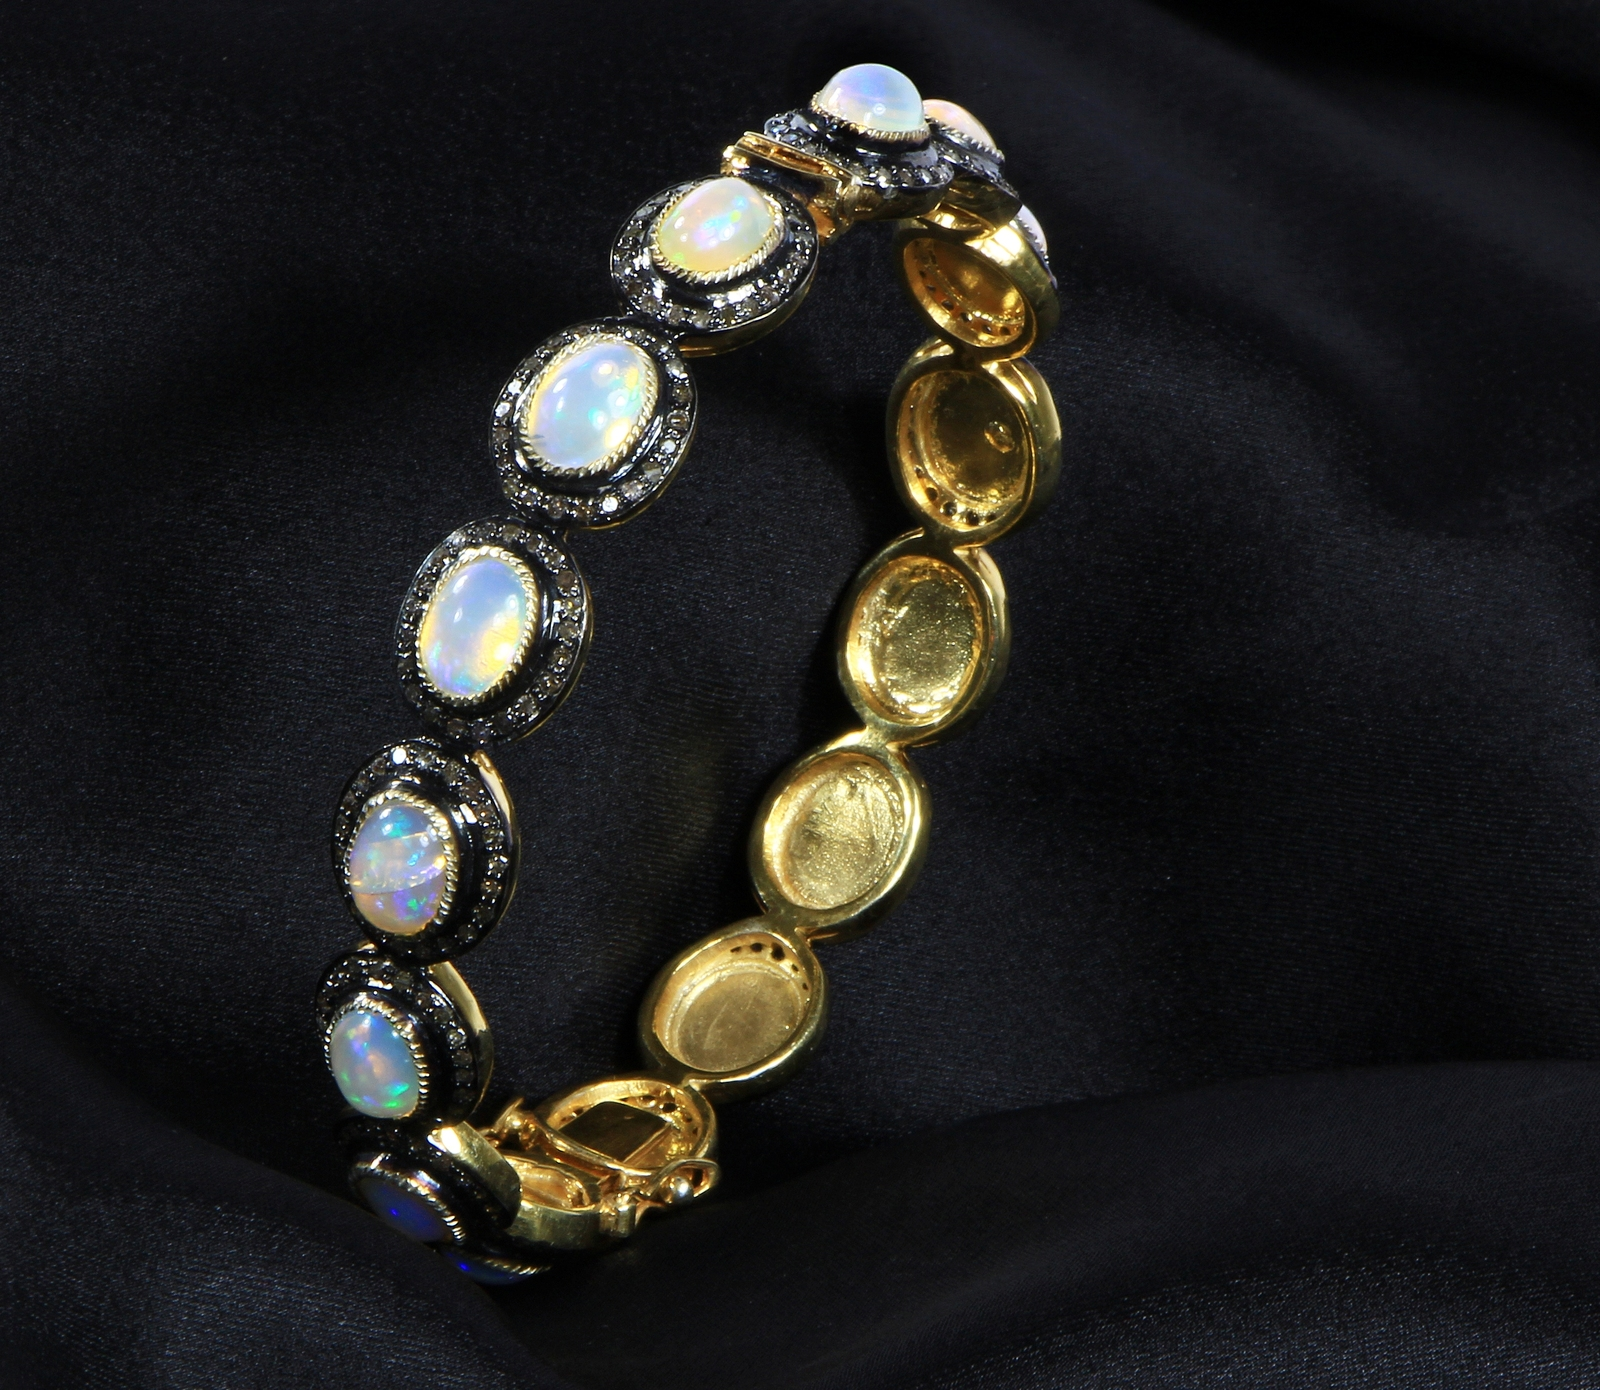 Round Openable Bangle 14kt Gold .925Sterling Silver with Opal and Pave Diamonds